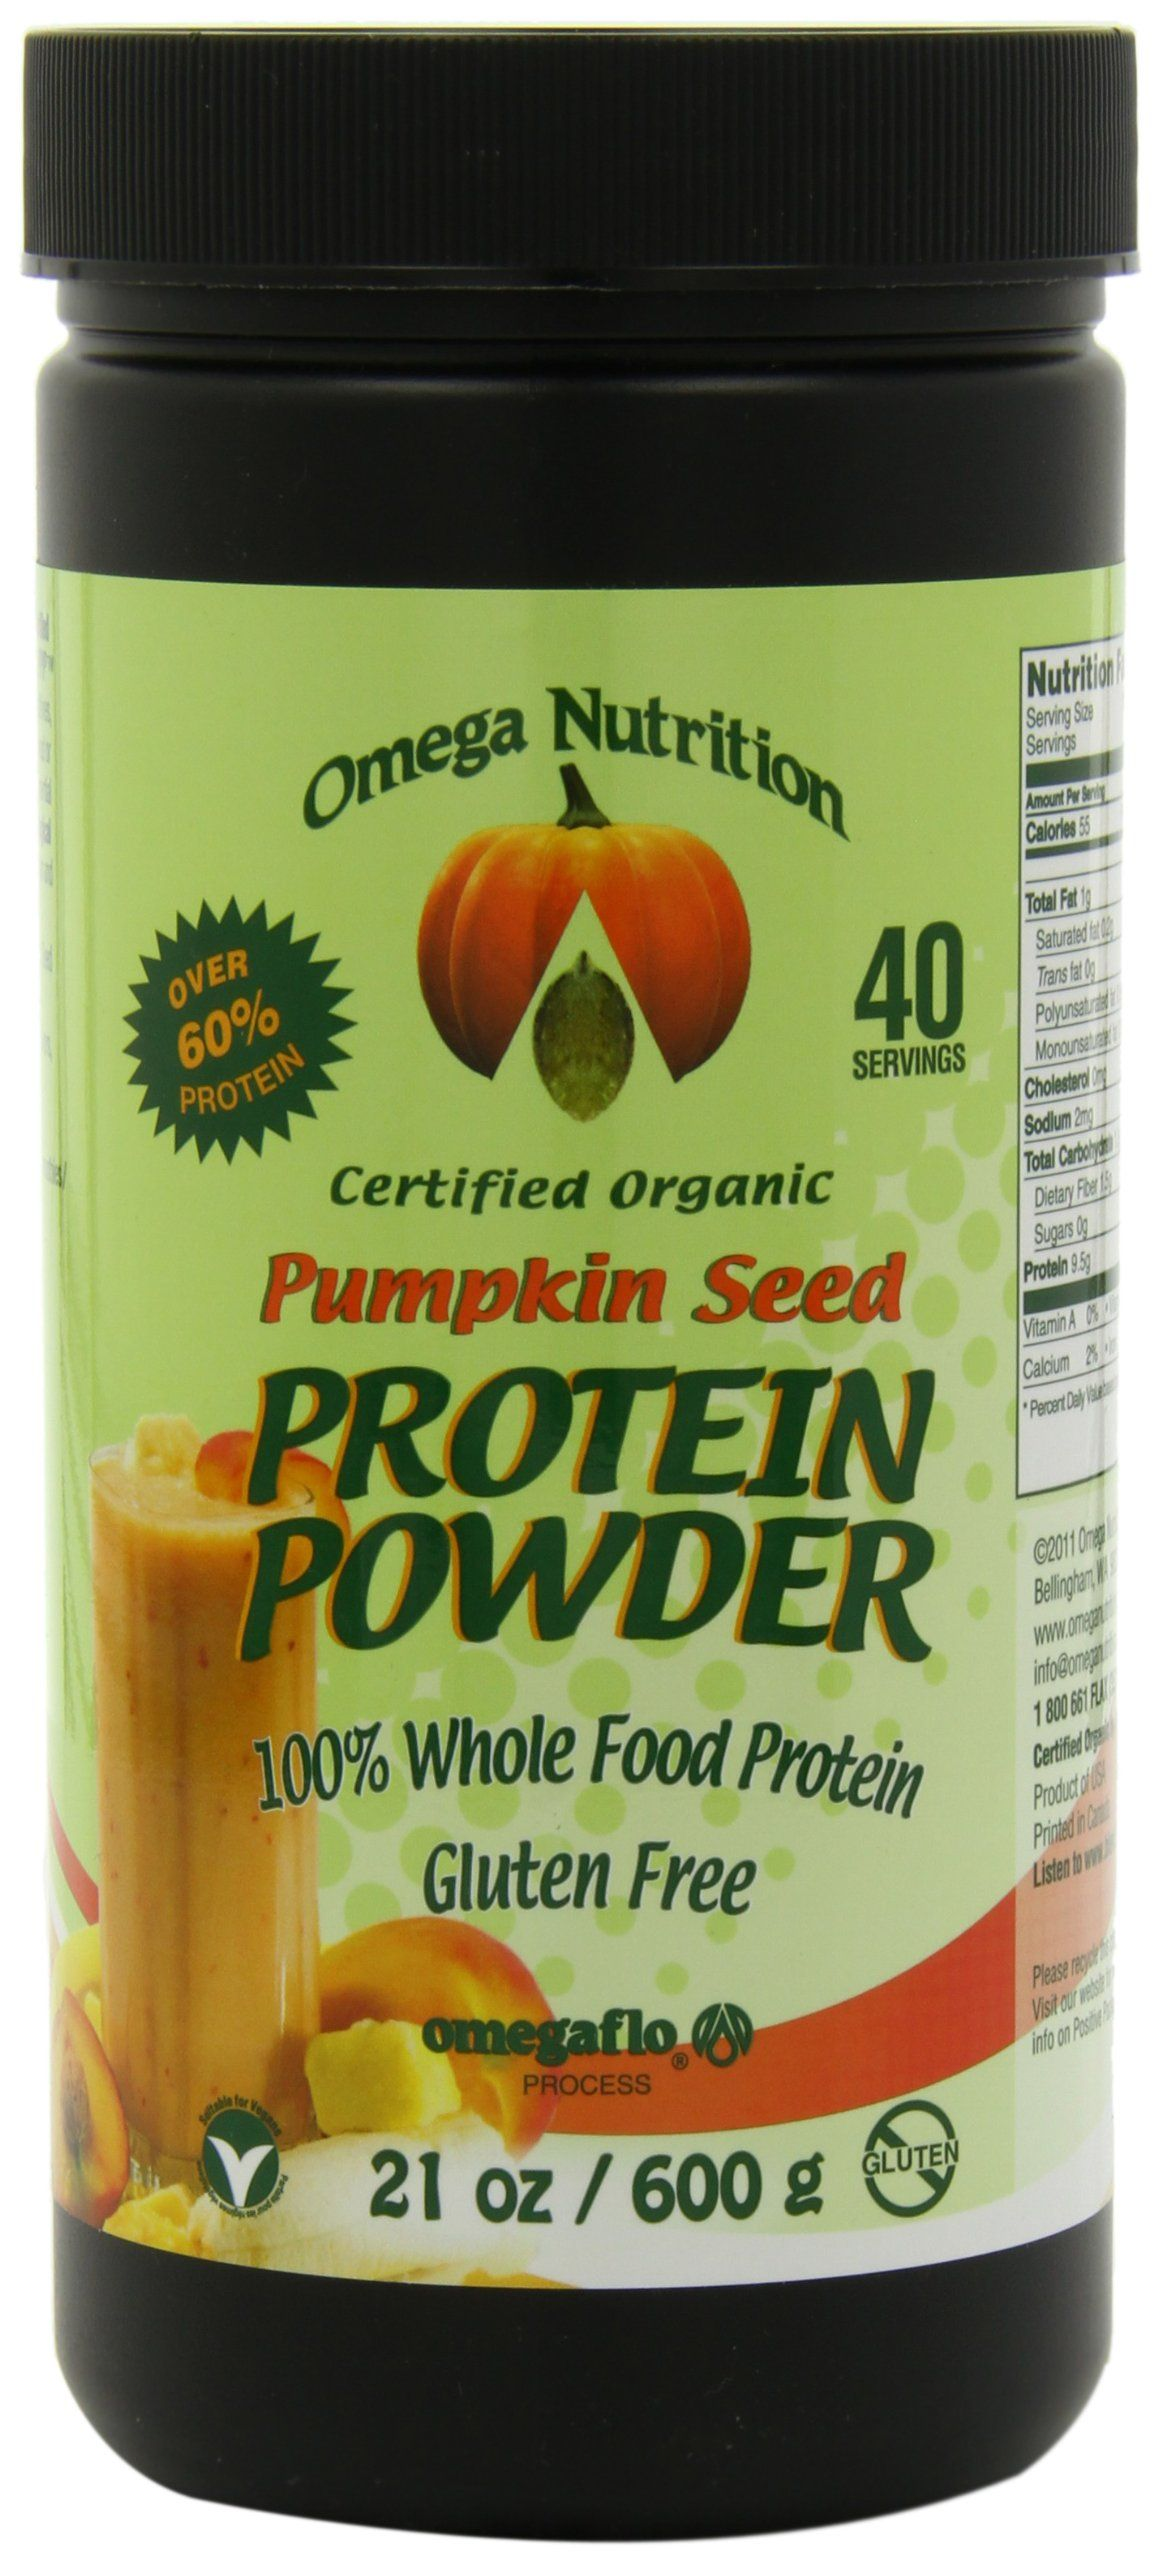 Omega Nutrition Pumpkin Seed Protein Powder, 21Ounce